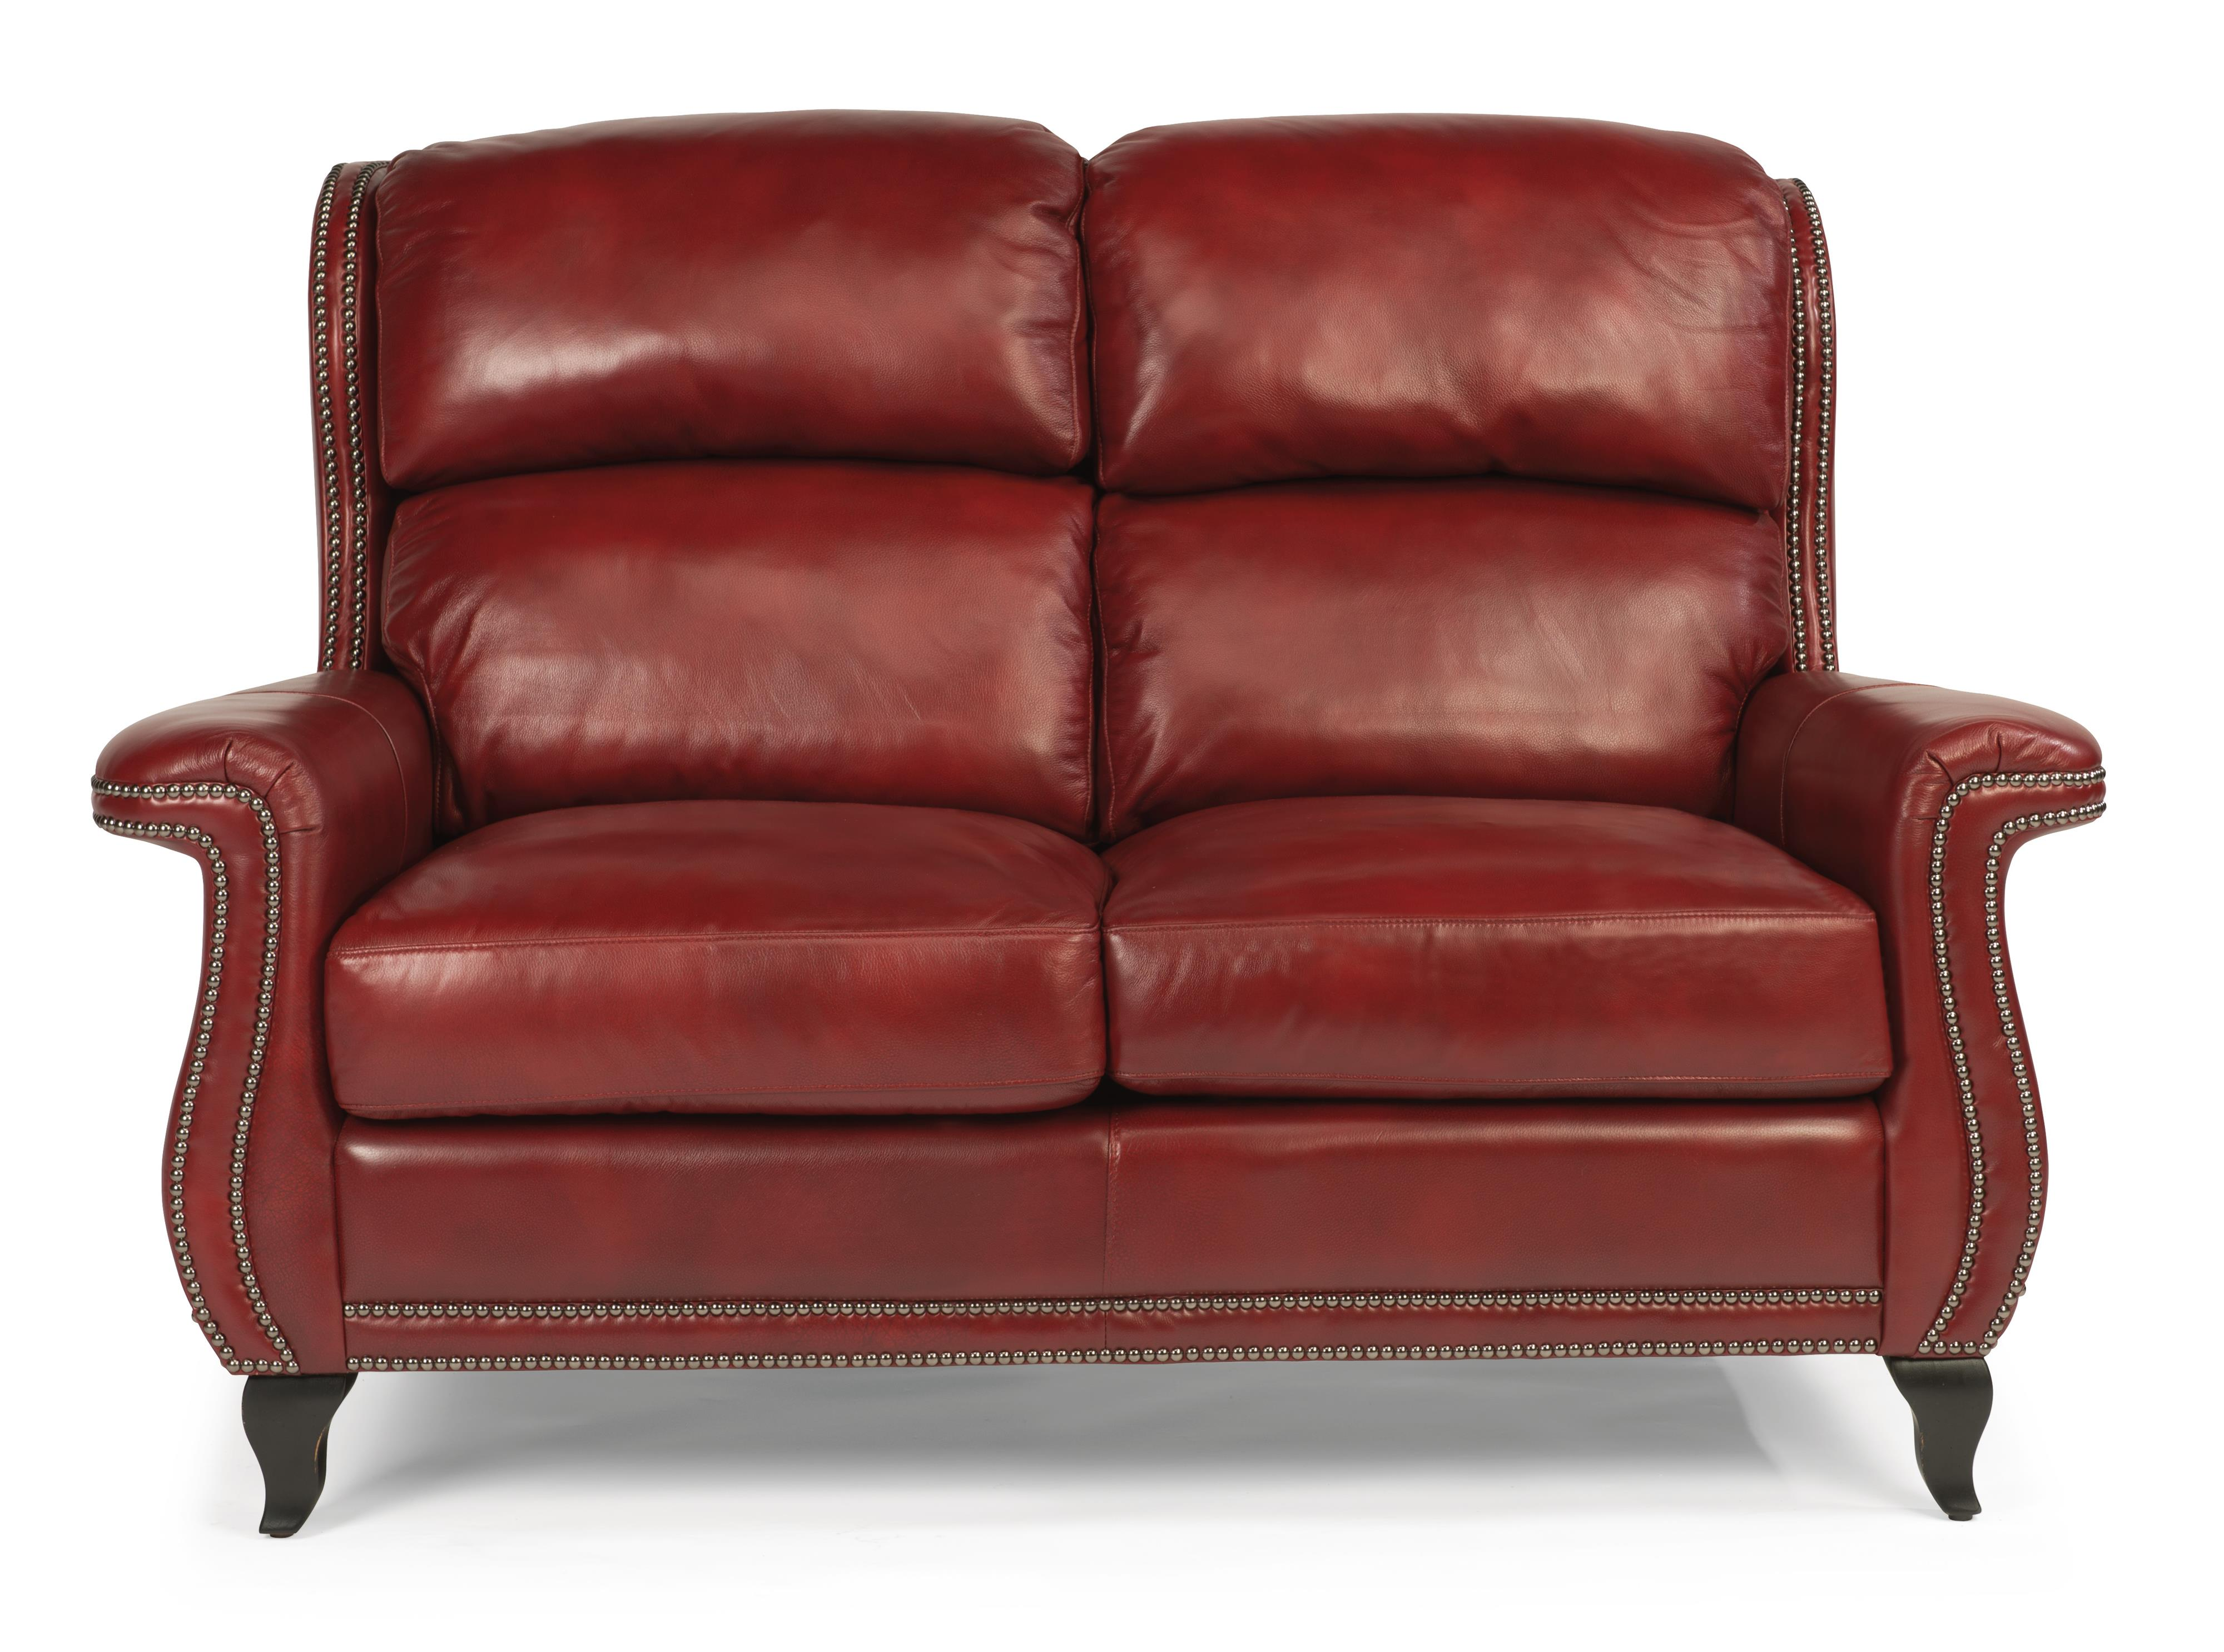 Flexsteel Latitudes-Sting Ray Loveseat - Item Number: 1256-20-LSP-55